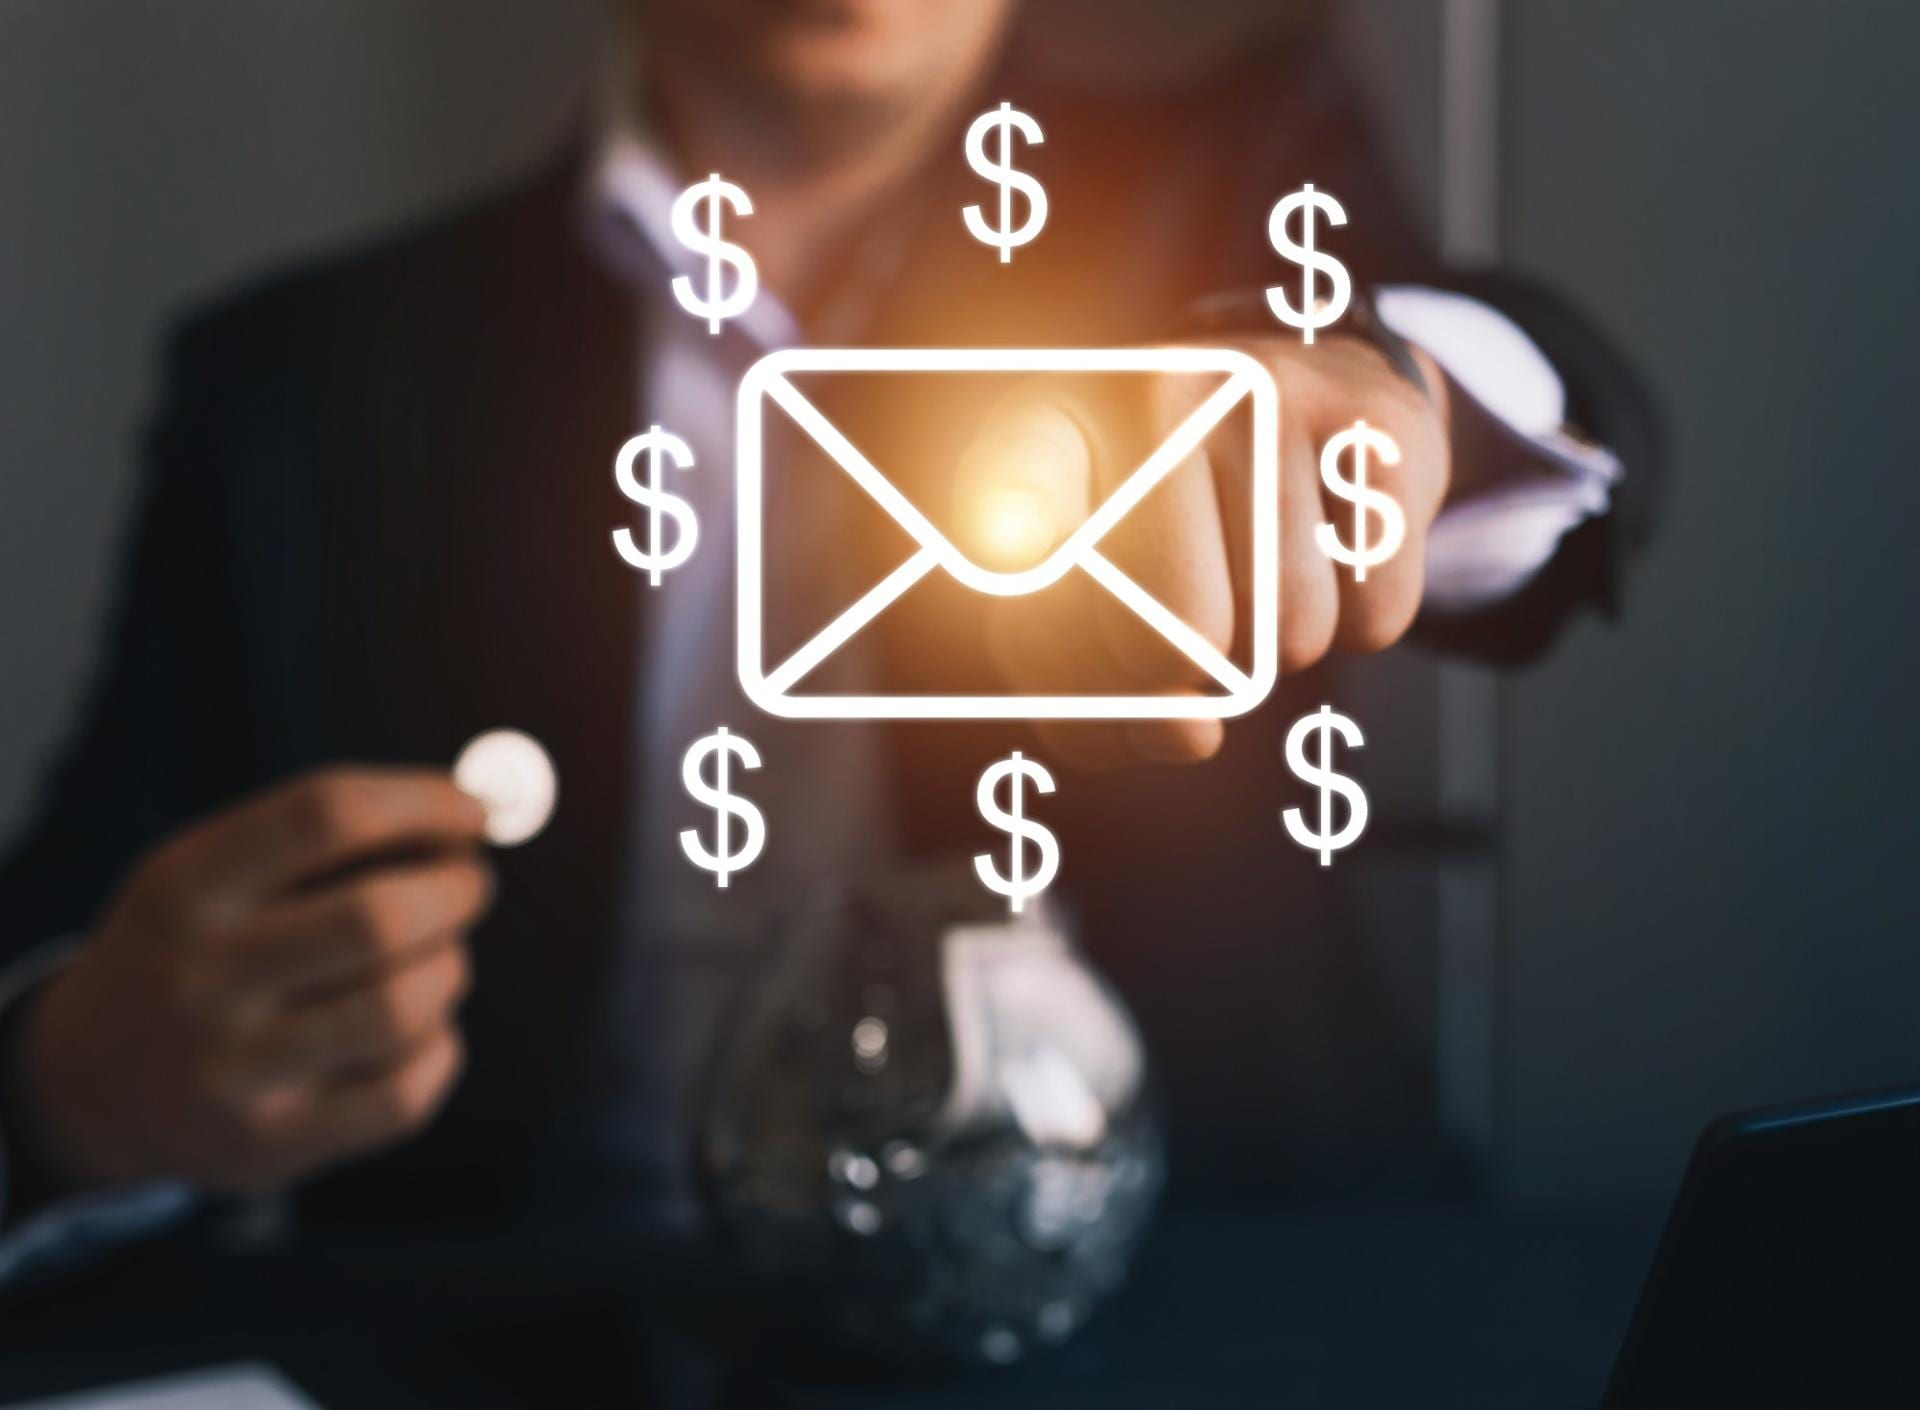 Email Marketing Graphic with envelope and dollar signs